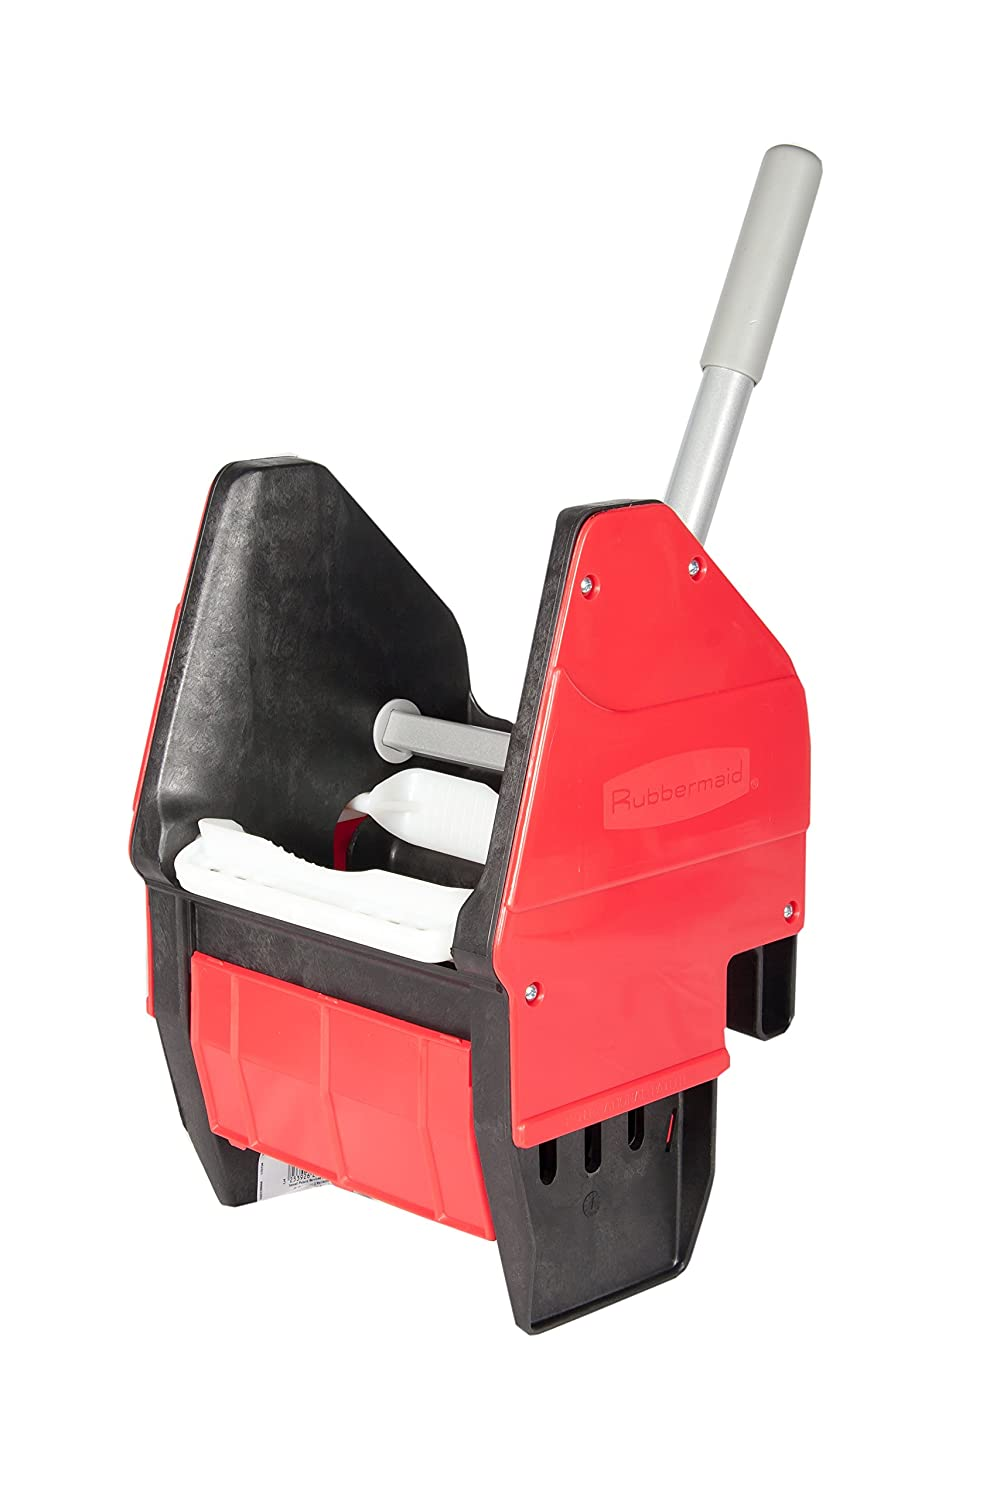 Rubbermaid Commercial Down Pressure Wringer - Red Rubbermaid Commercial Products R016922